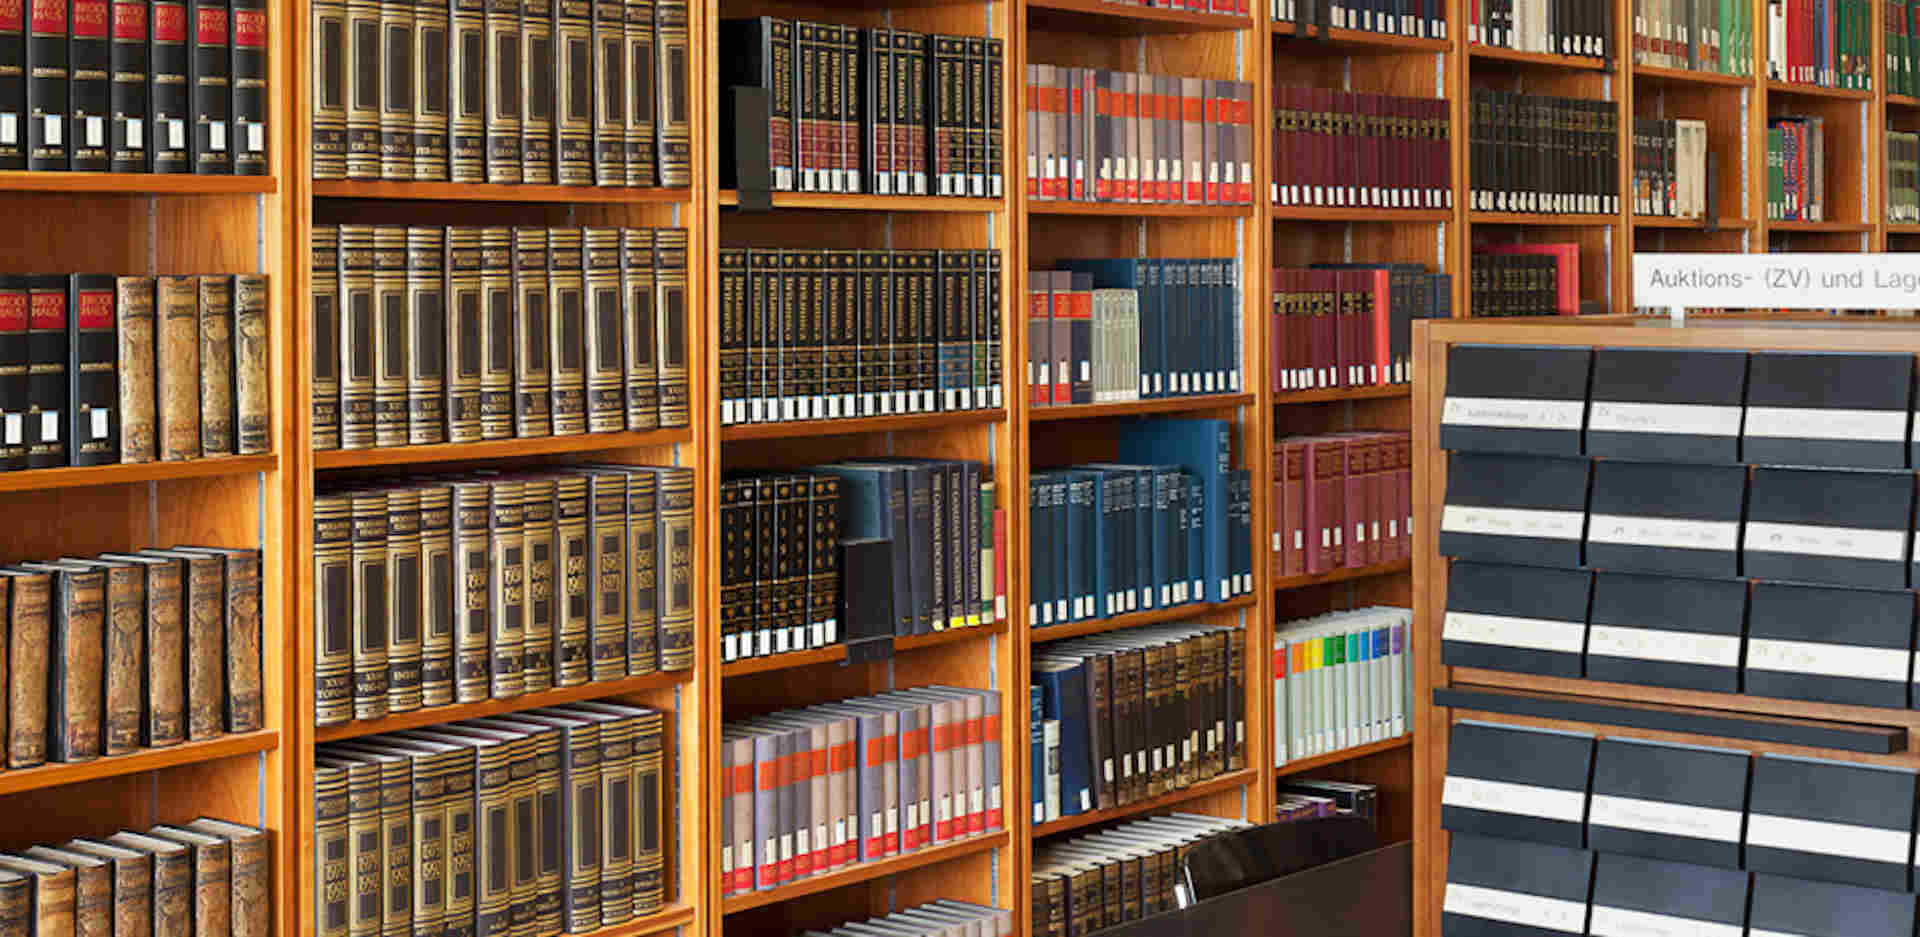 Library of Art History at the Kulturforum